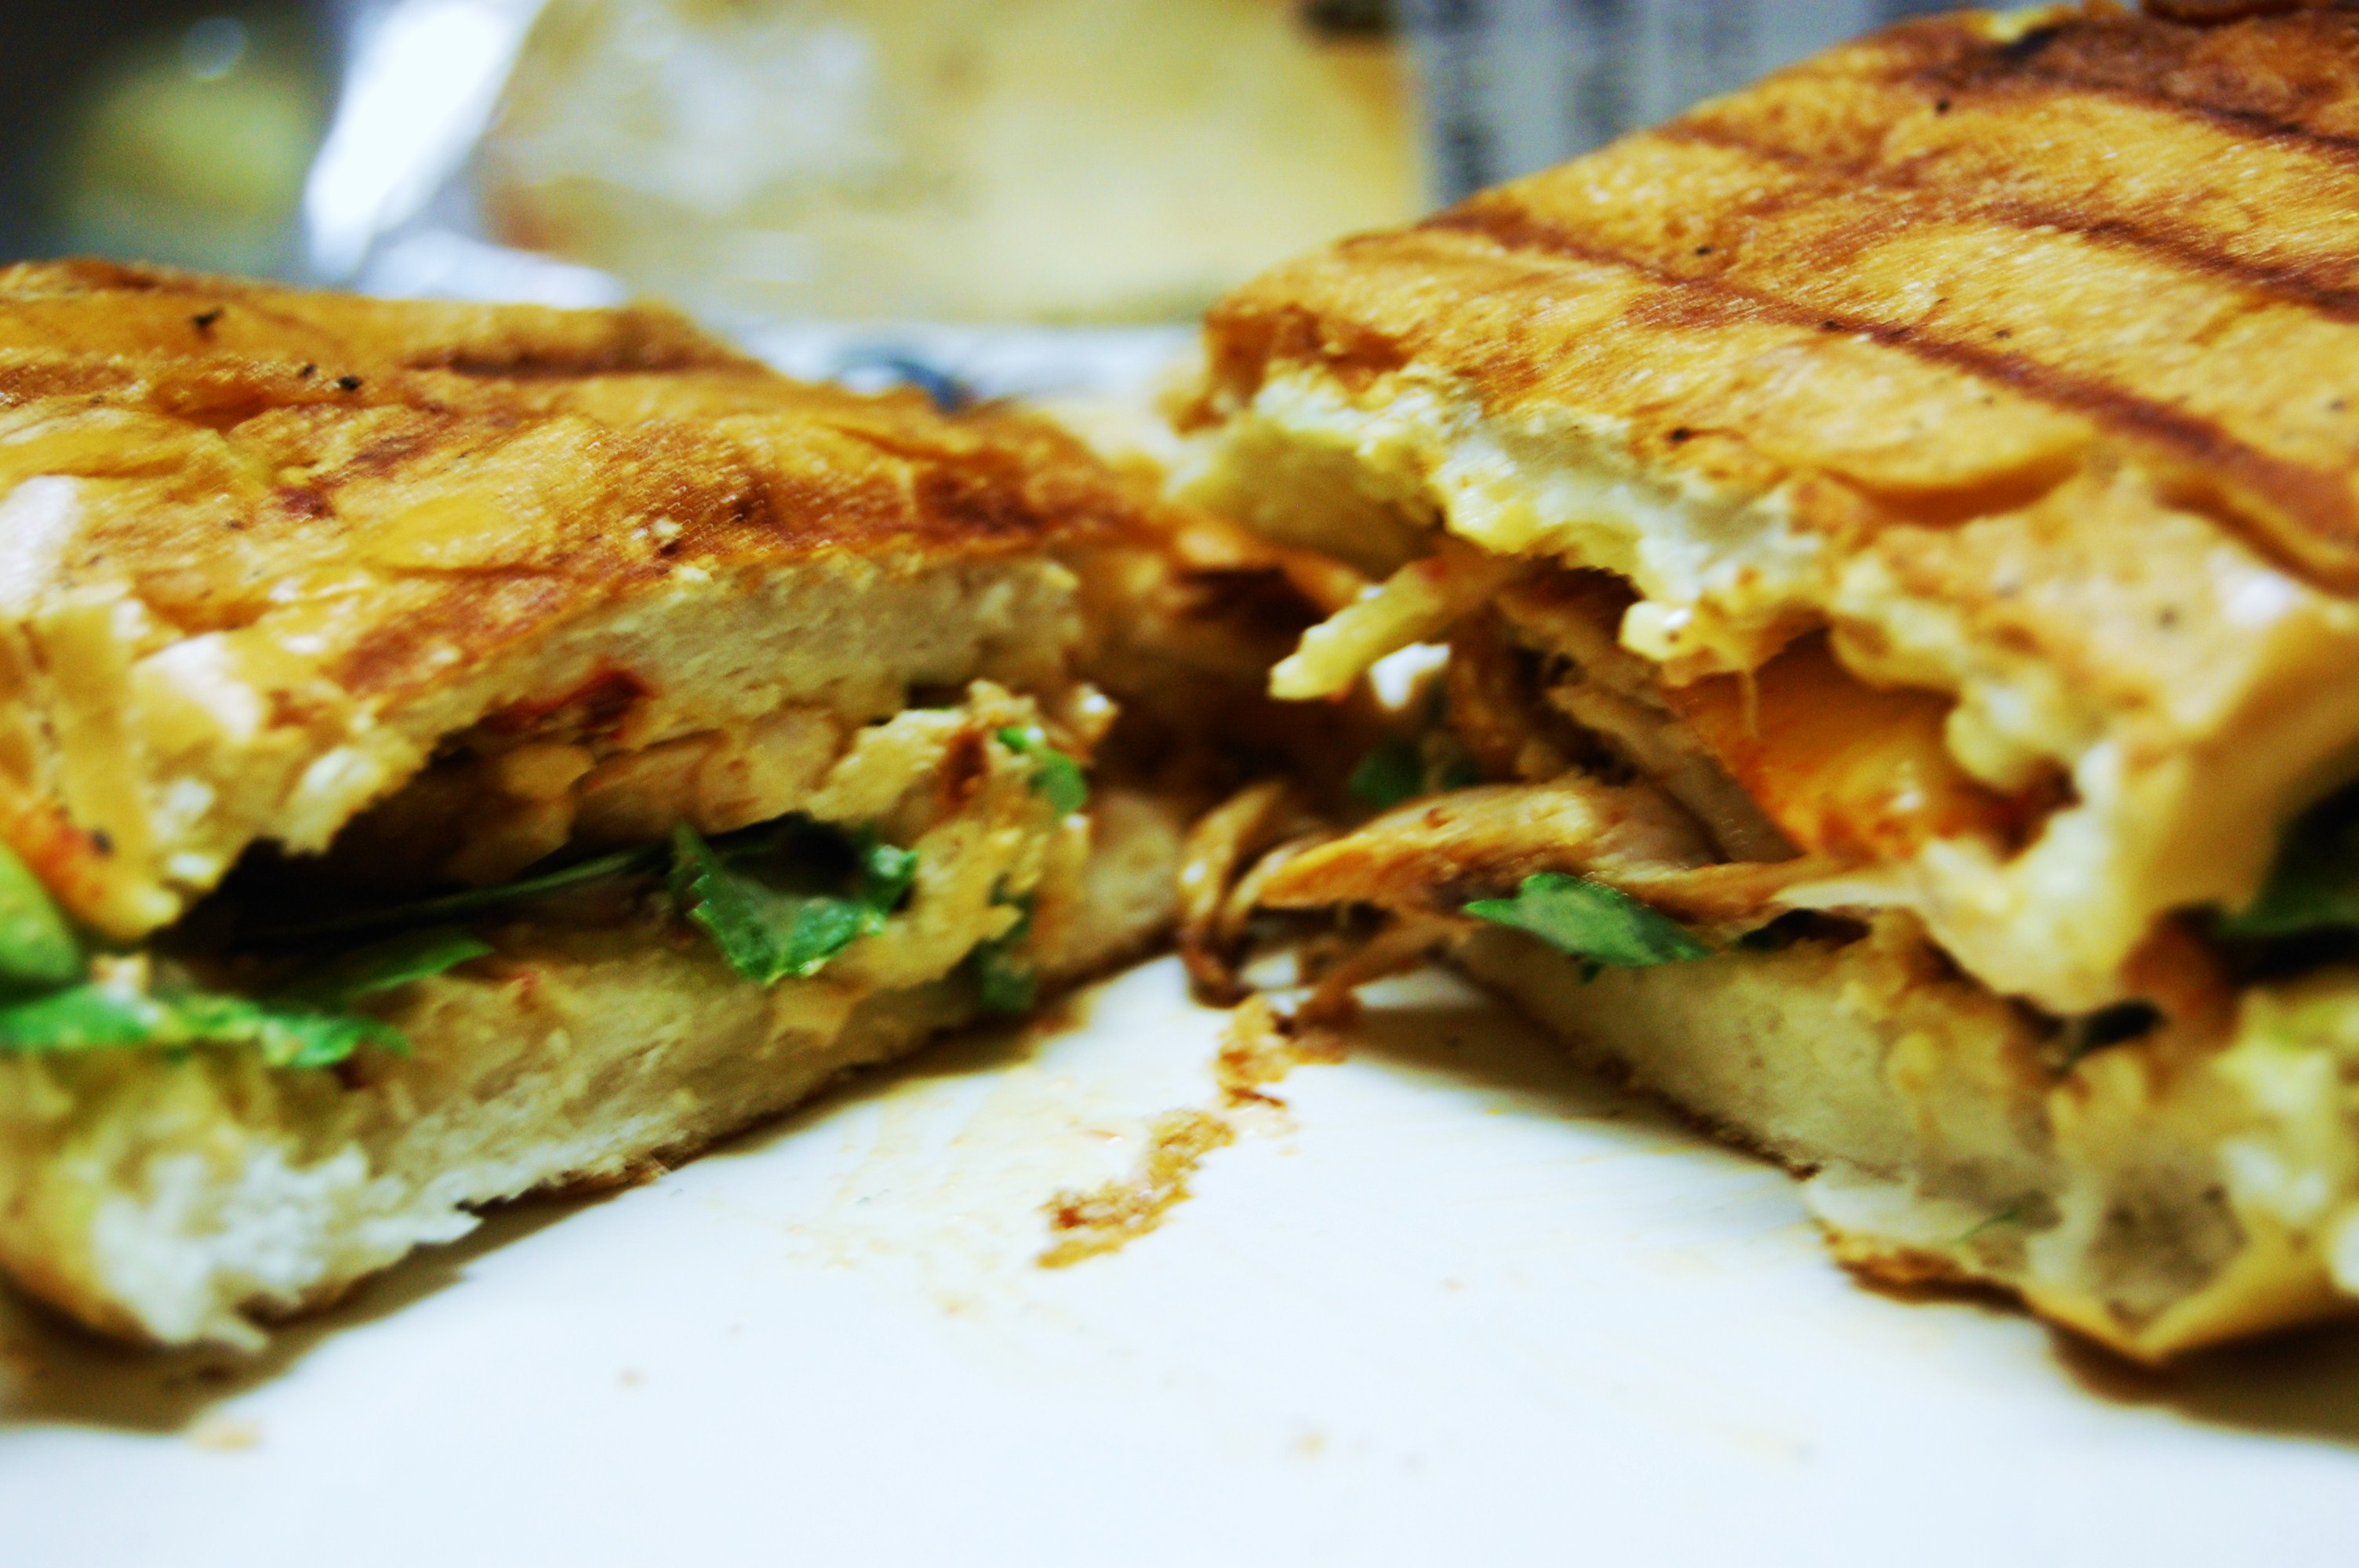 ... chicken grilled cheese sandwich chipotle grilled chicken with avocado